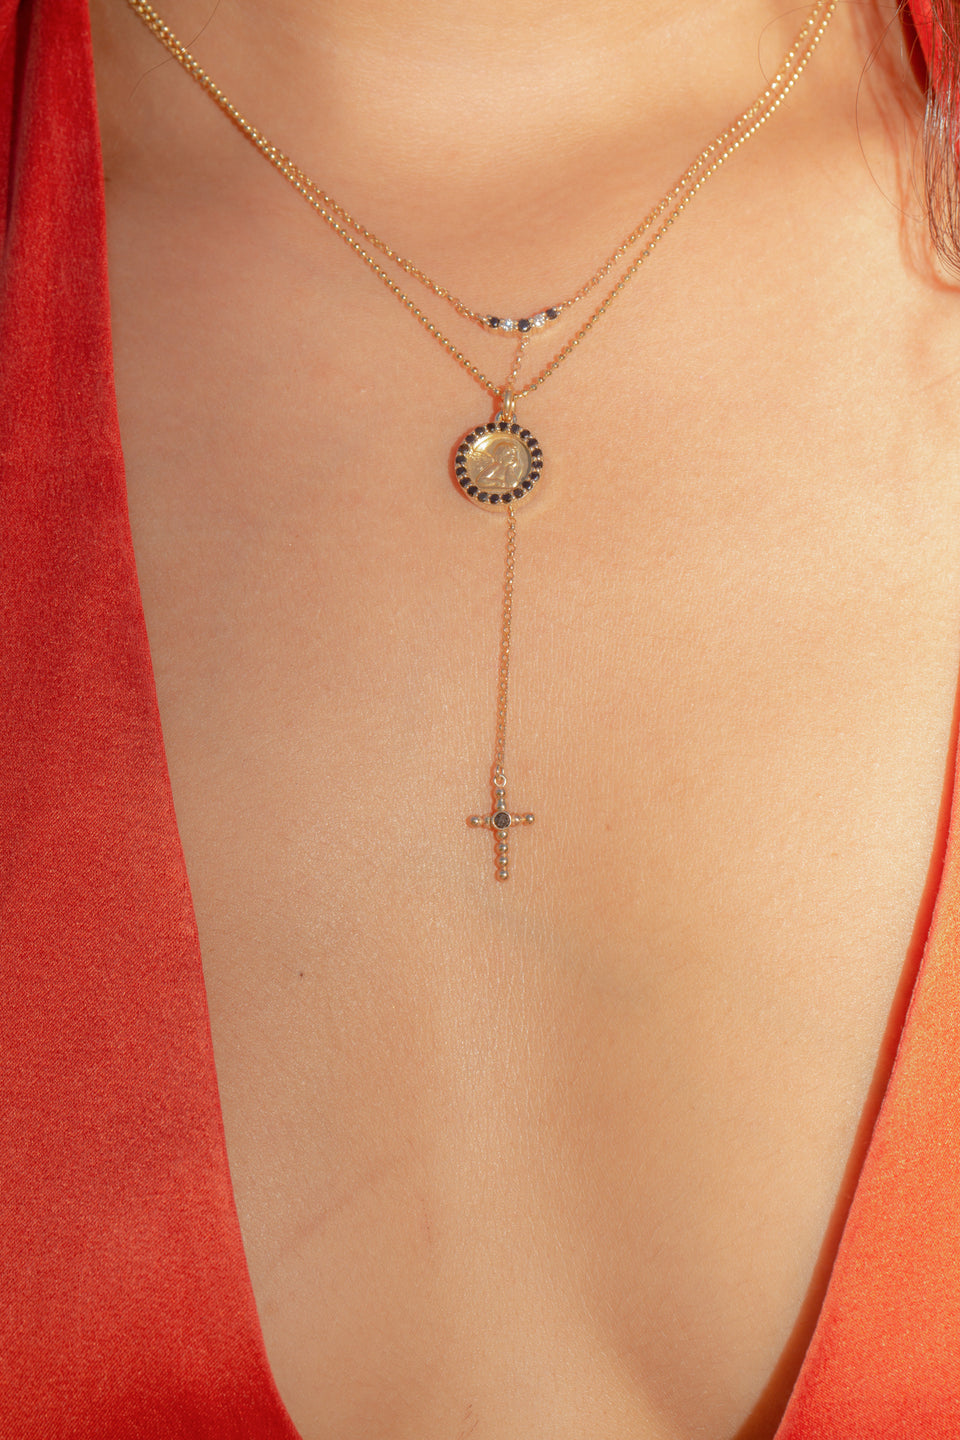 My Sweet Angel Necklace